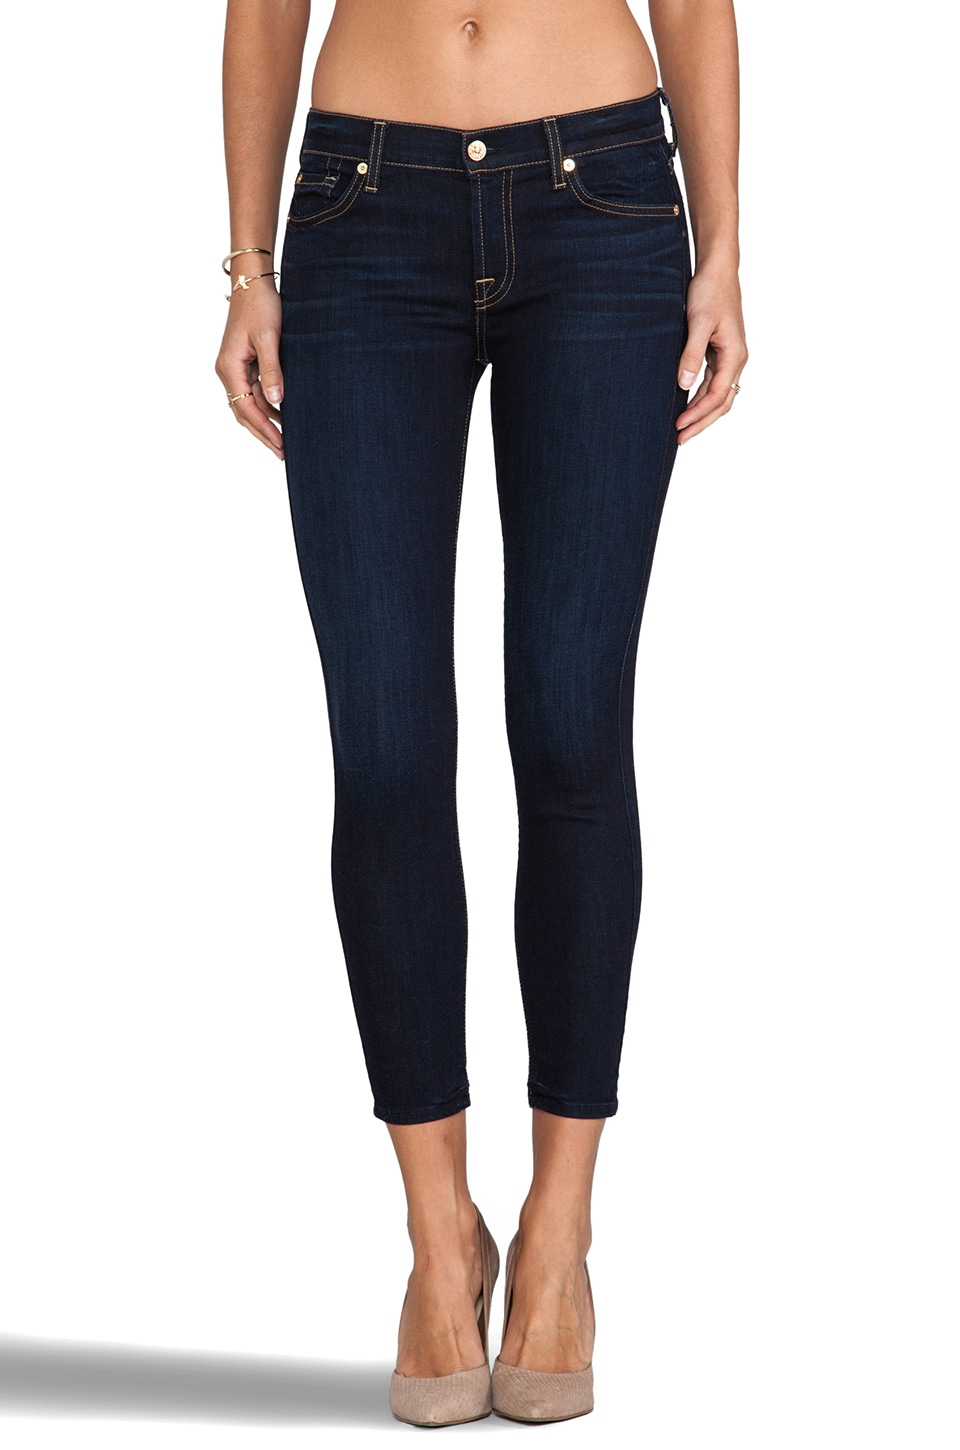 7 For All Mankind Cropped Skinny in Slim Illusion Classic Dark Blue